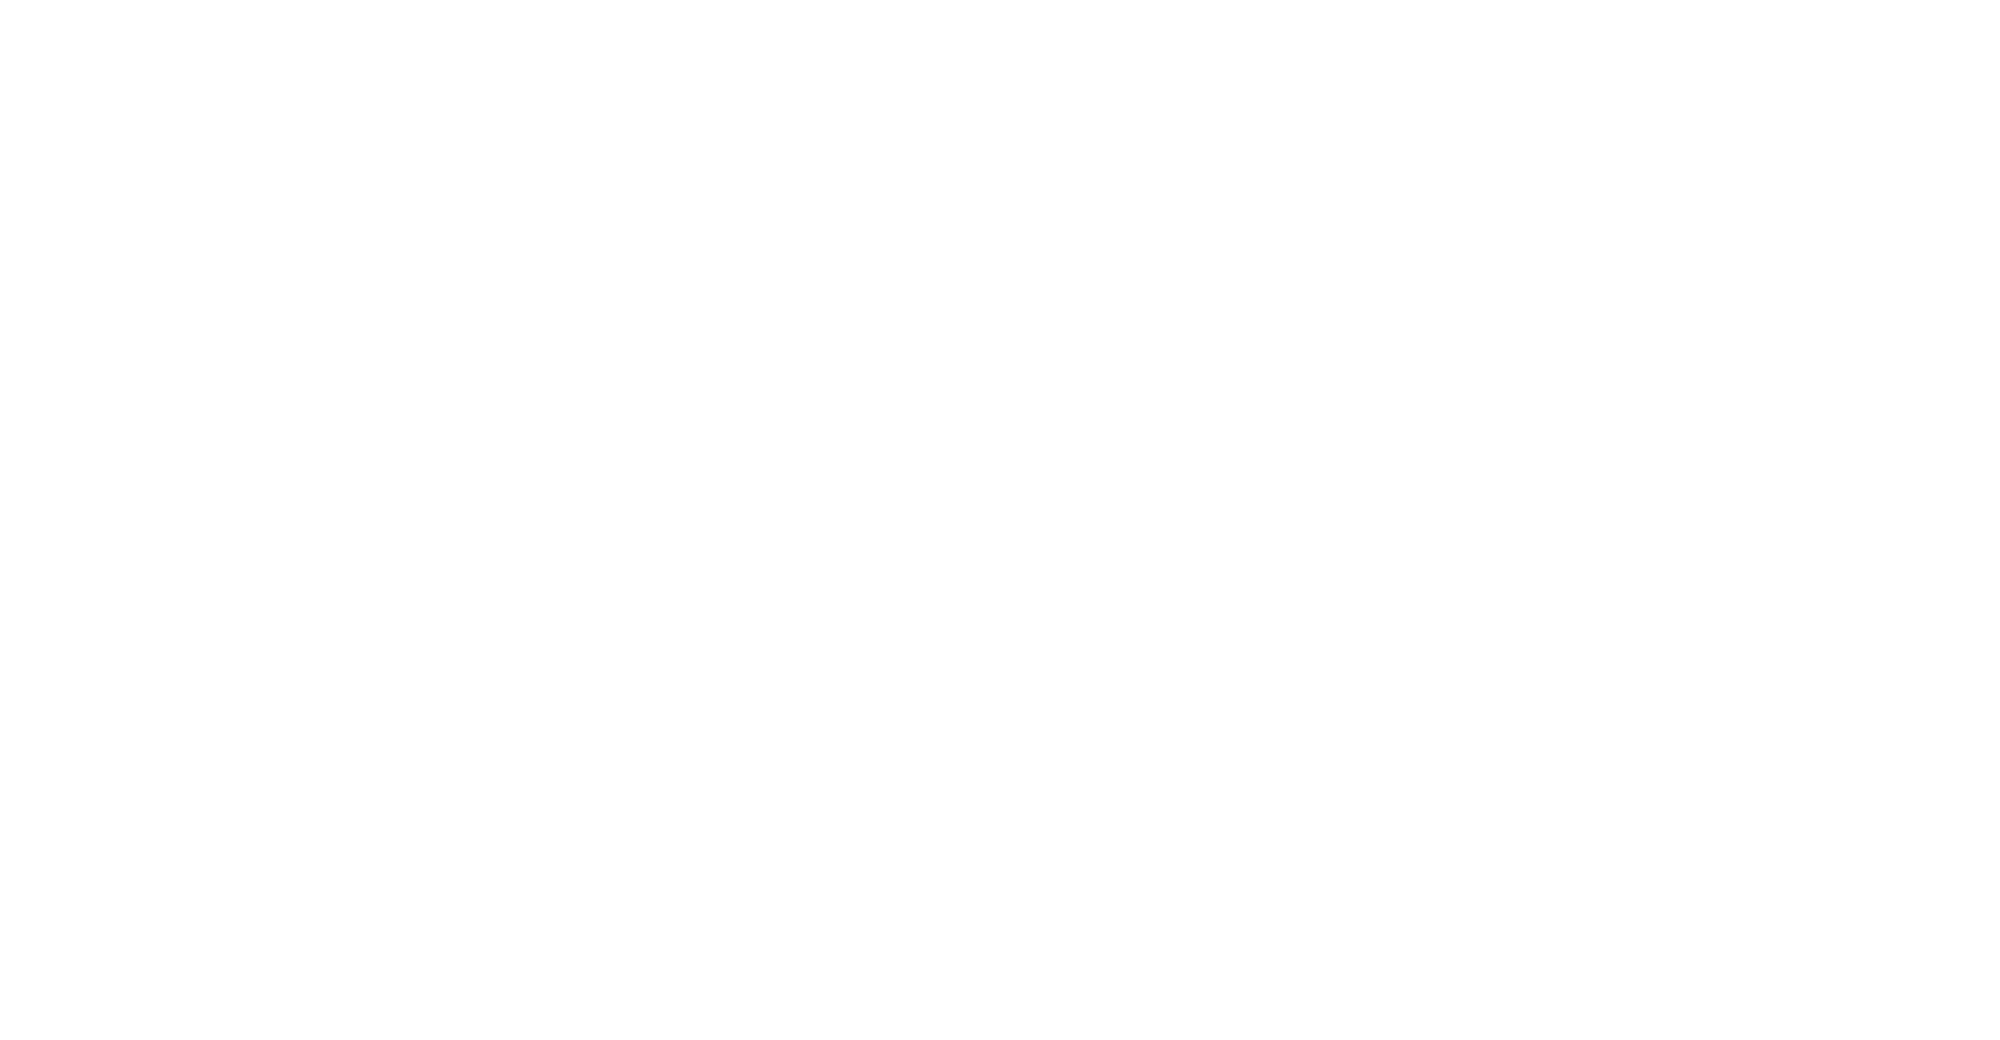 Concentric circles representing the action of an echo